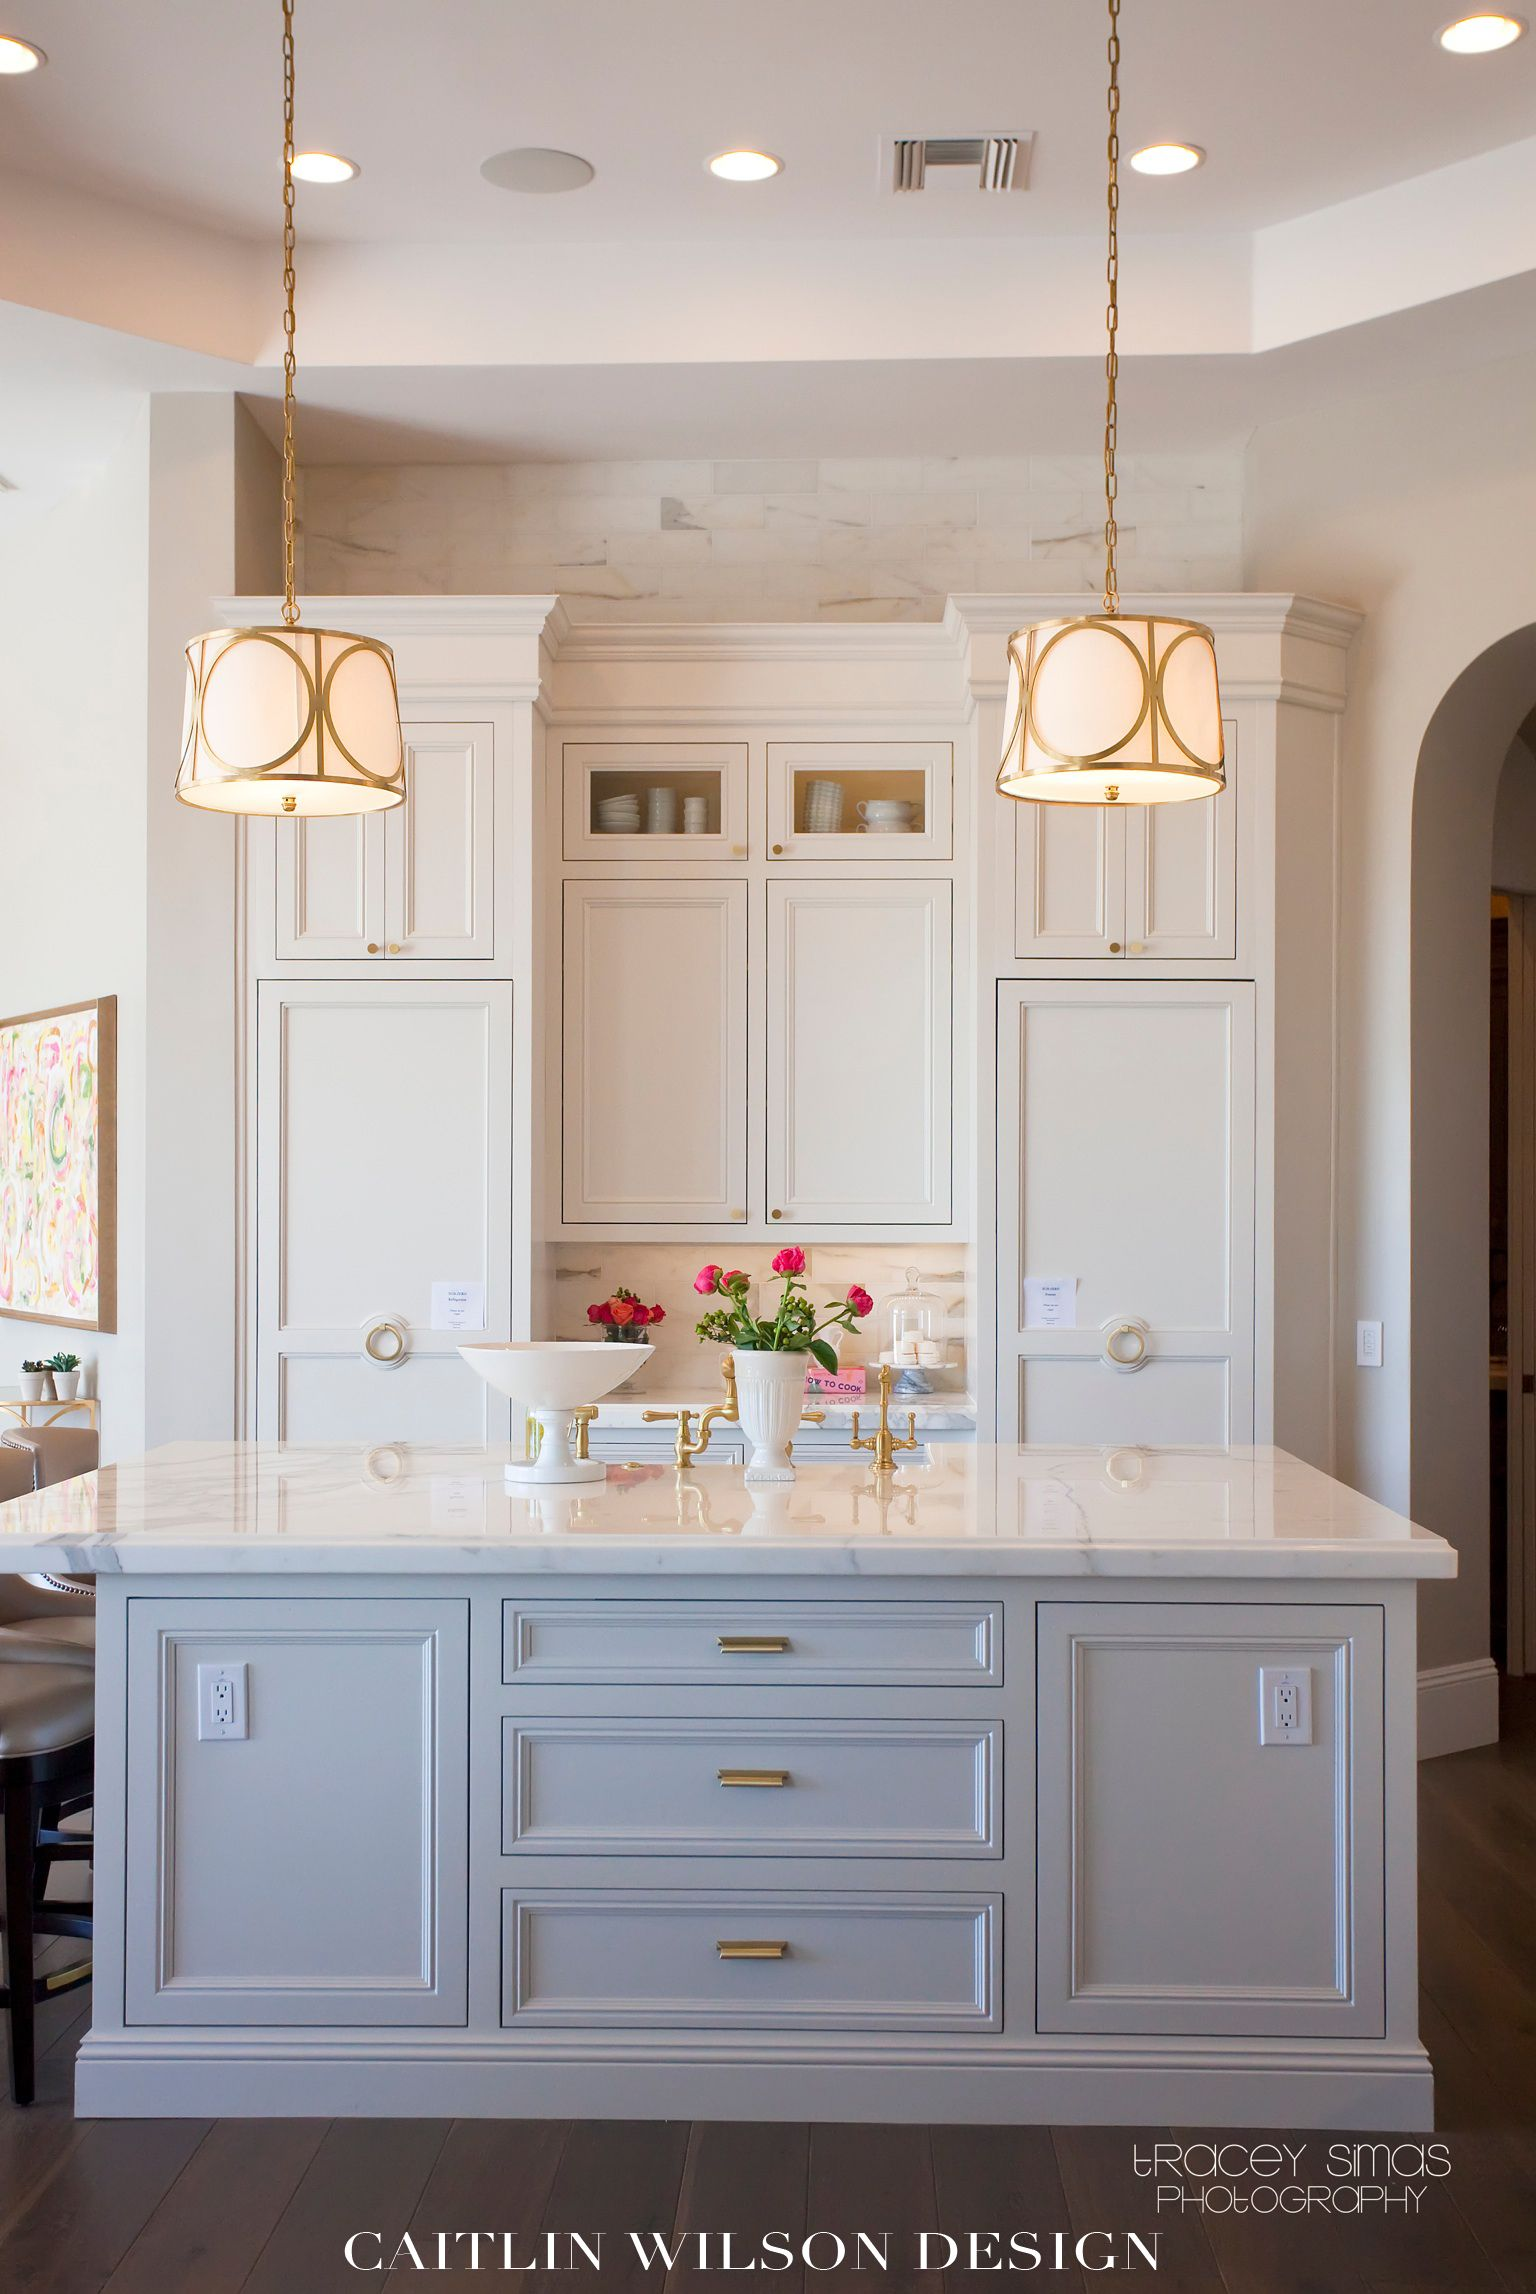 hardware for white kitchen cabinets outdoor refrigerator street of dreams kitchens pinterest home